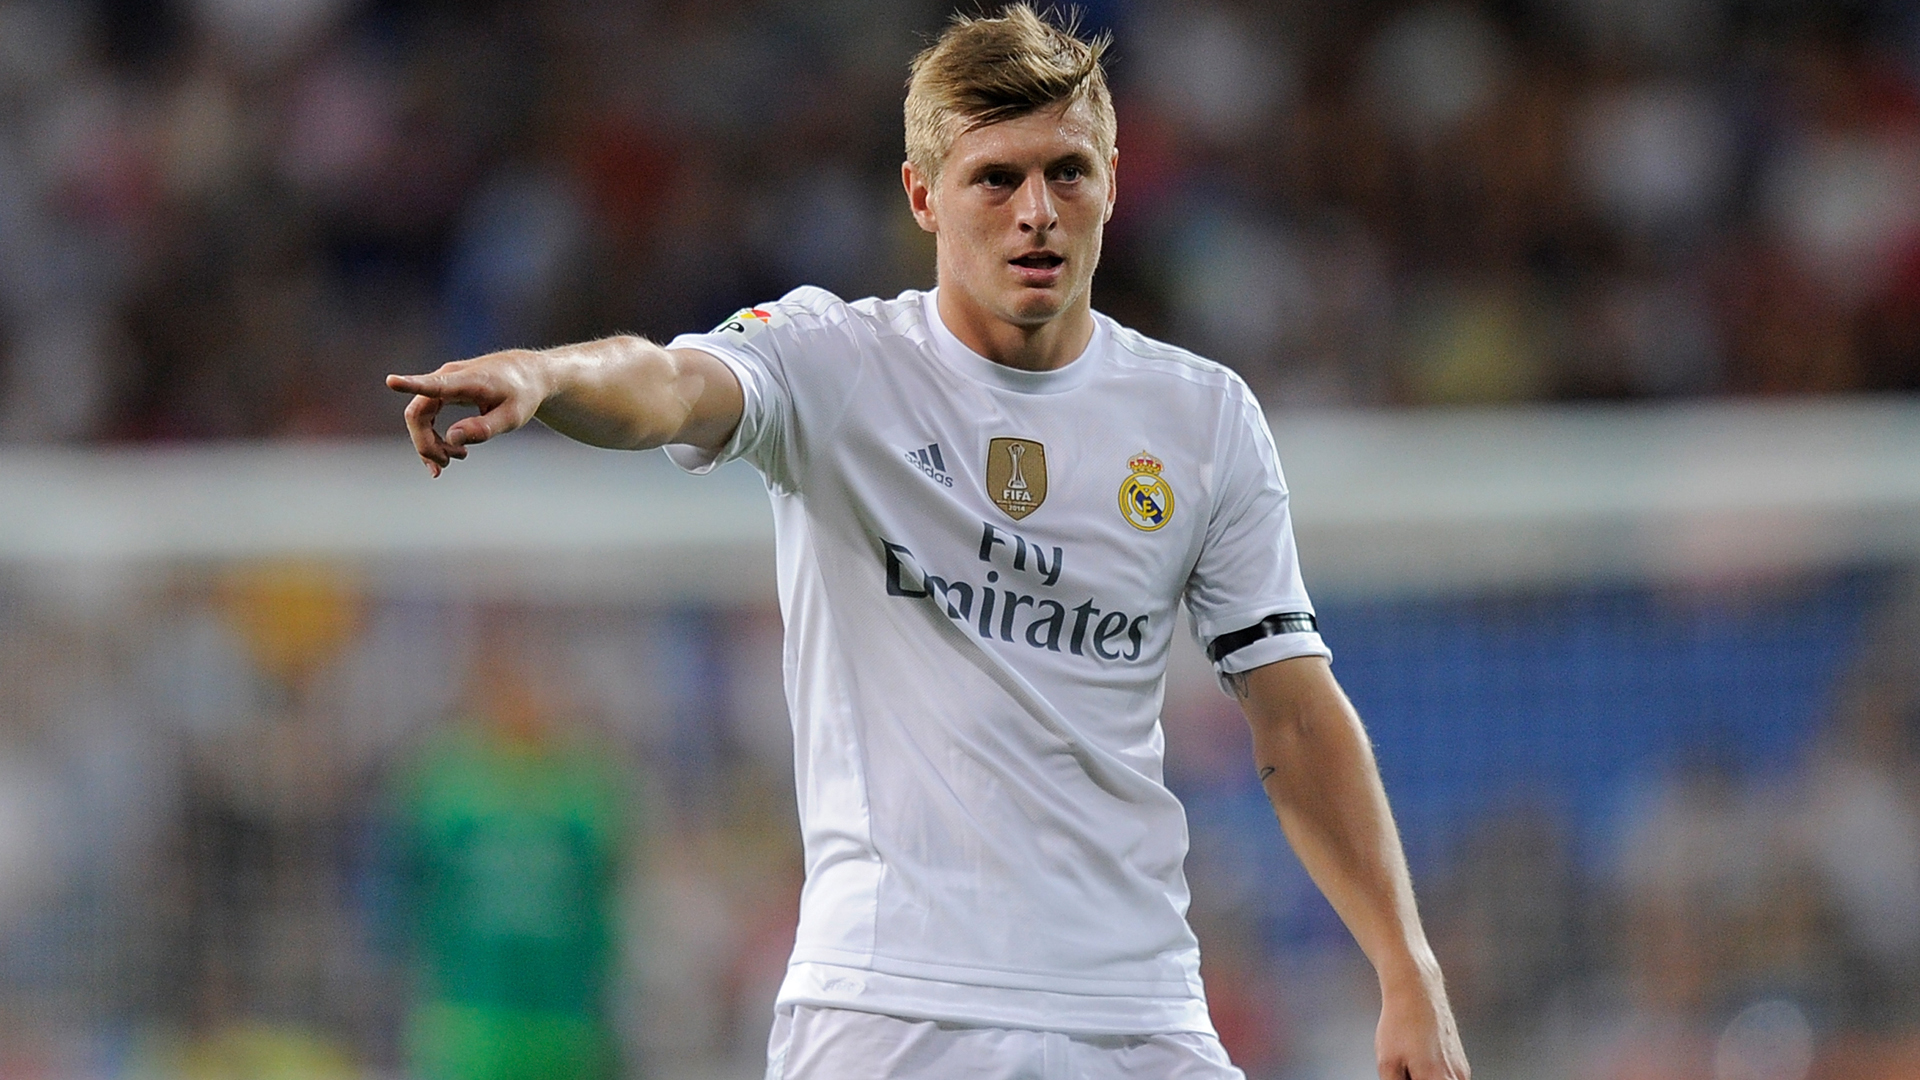 Toni Kroos of Real Madrid reacts during the Santiago Bernabeu Trophy match between Real Madrid and Galatasaray at Estadio Santiago Bernabeu on August 18, 2015. Photo: Reuters